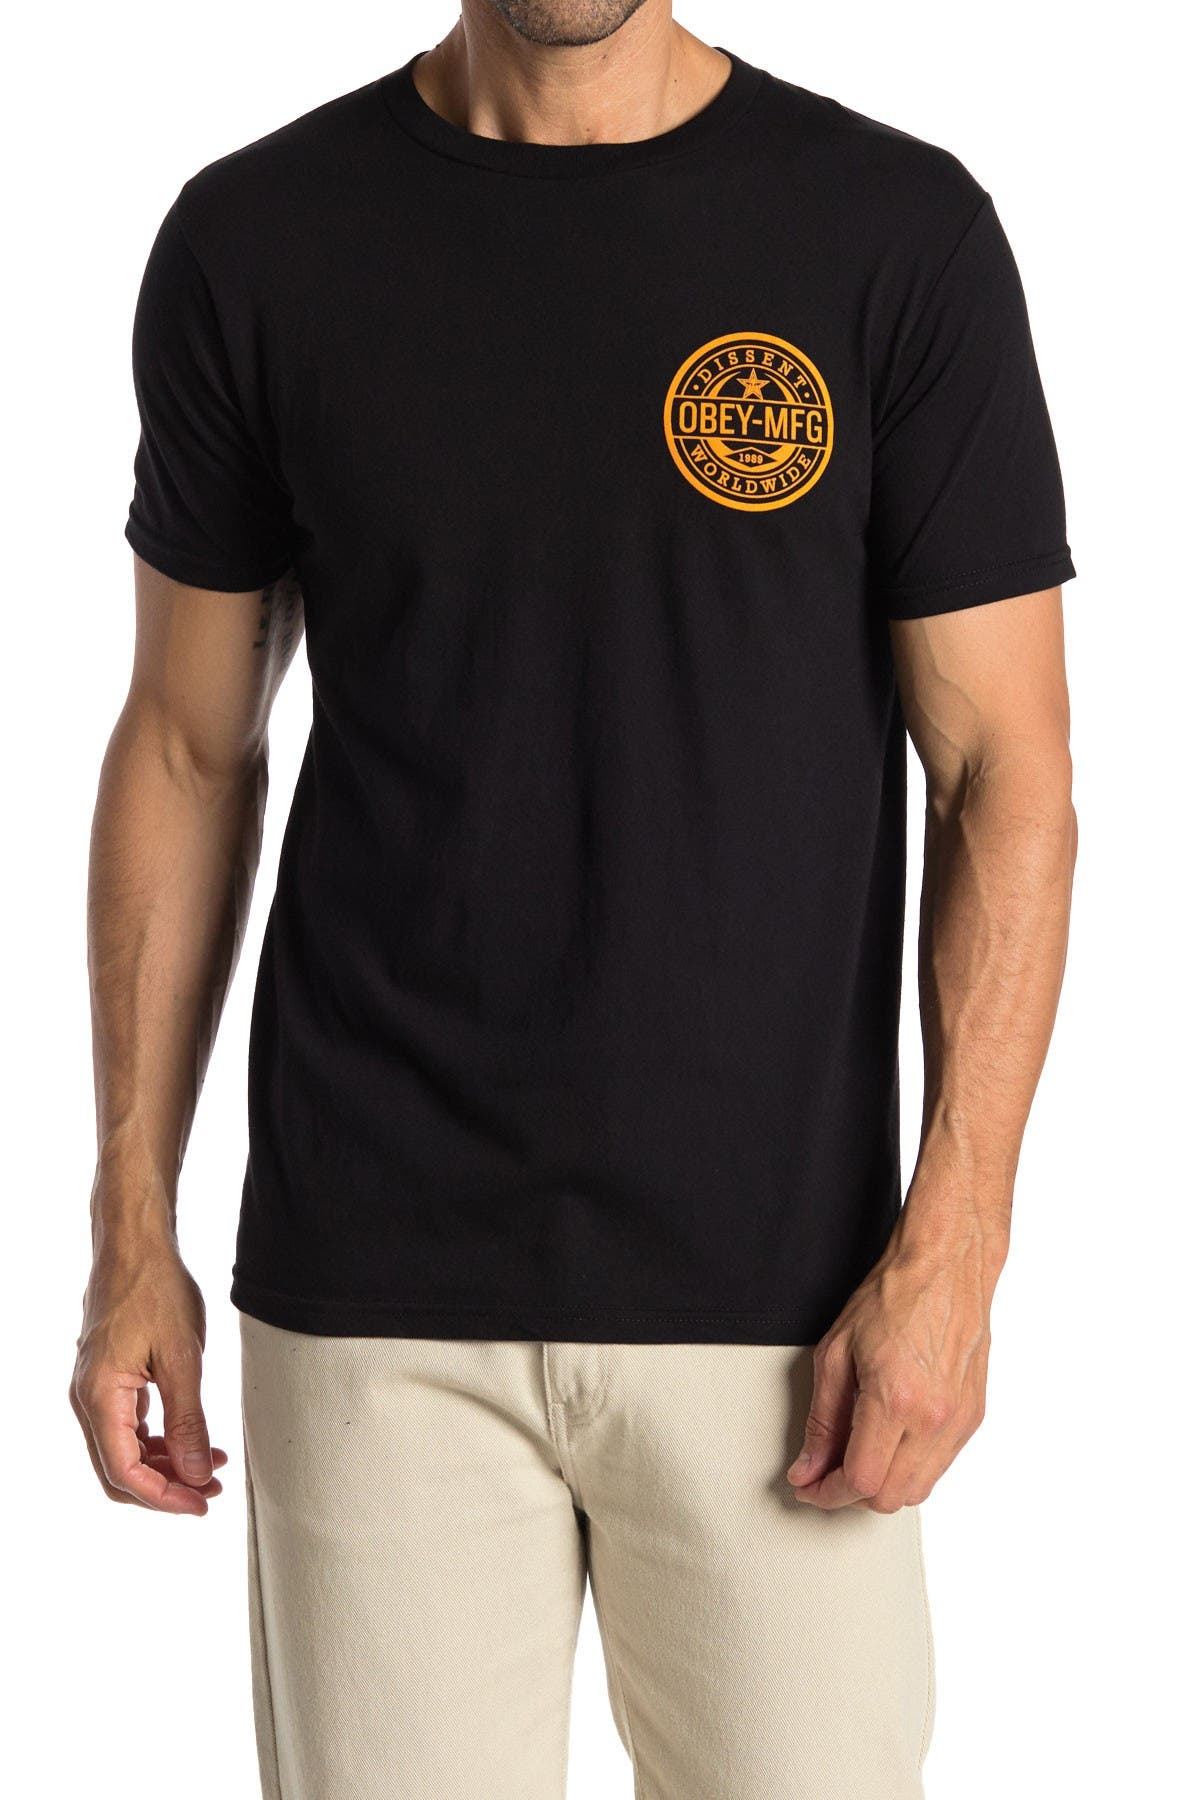 Image of Obey Worldwide Dissent Tee